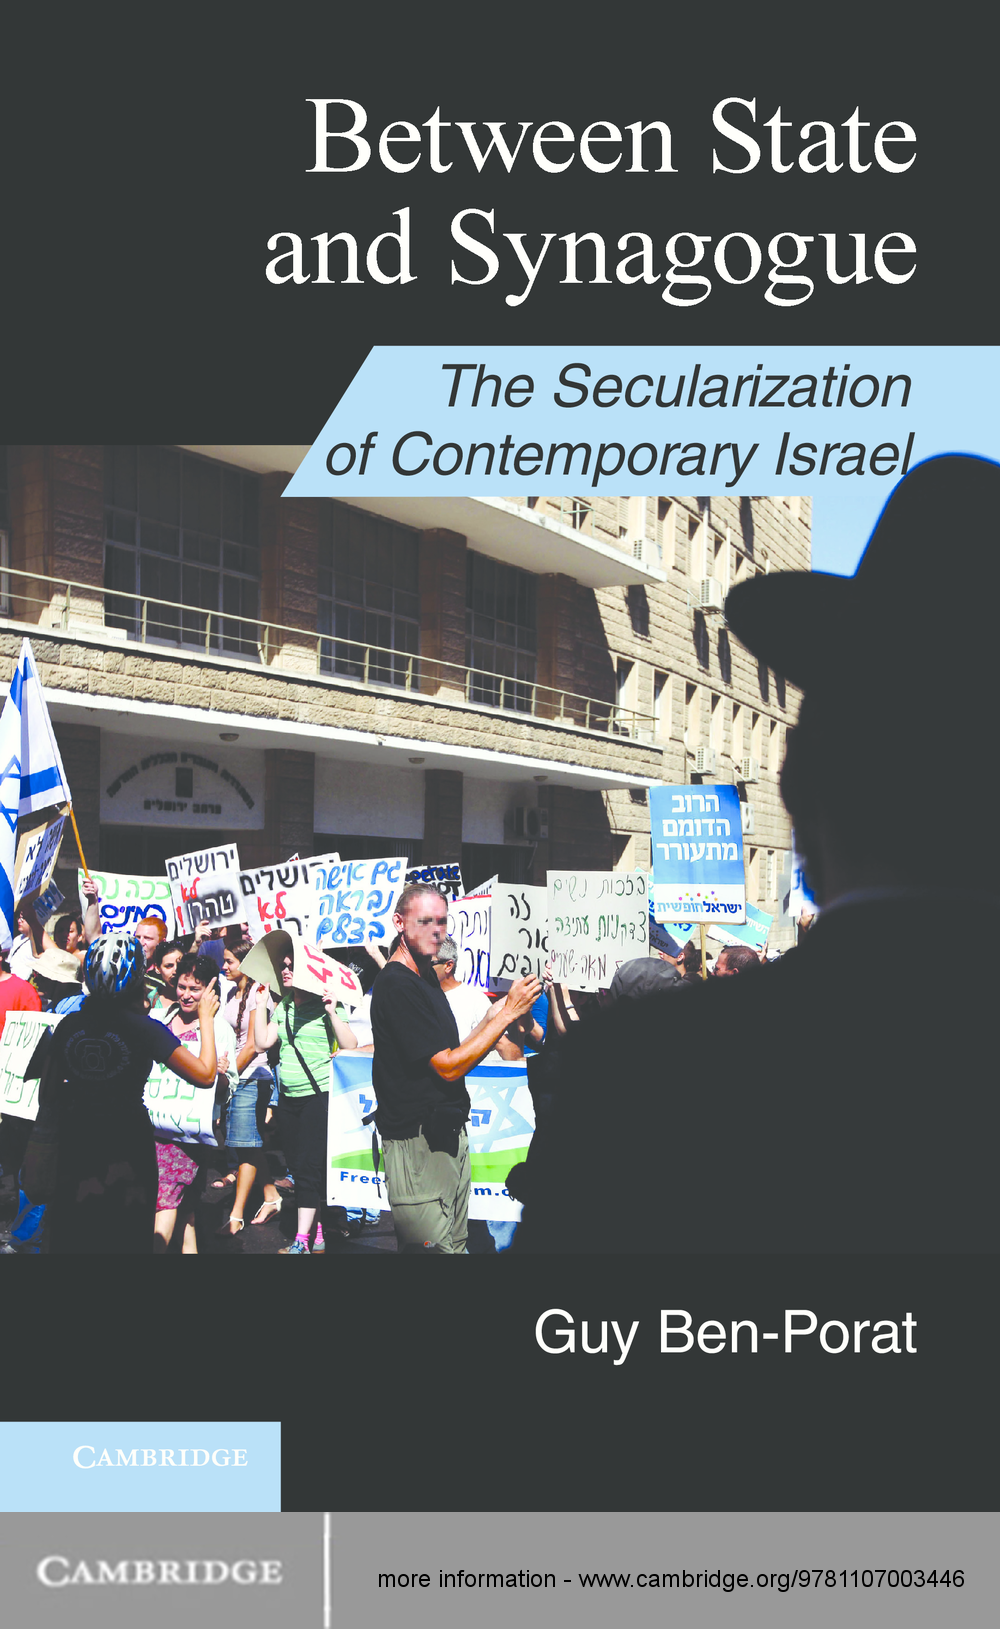 Between State and Synagogue The Secularization of Contemporary Israel